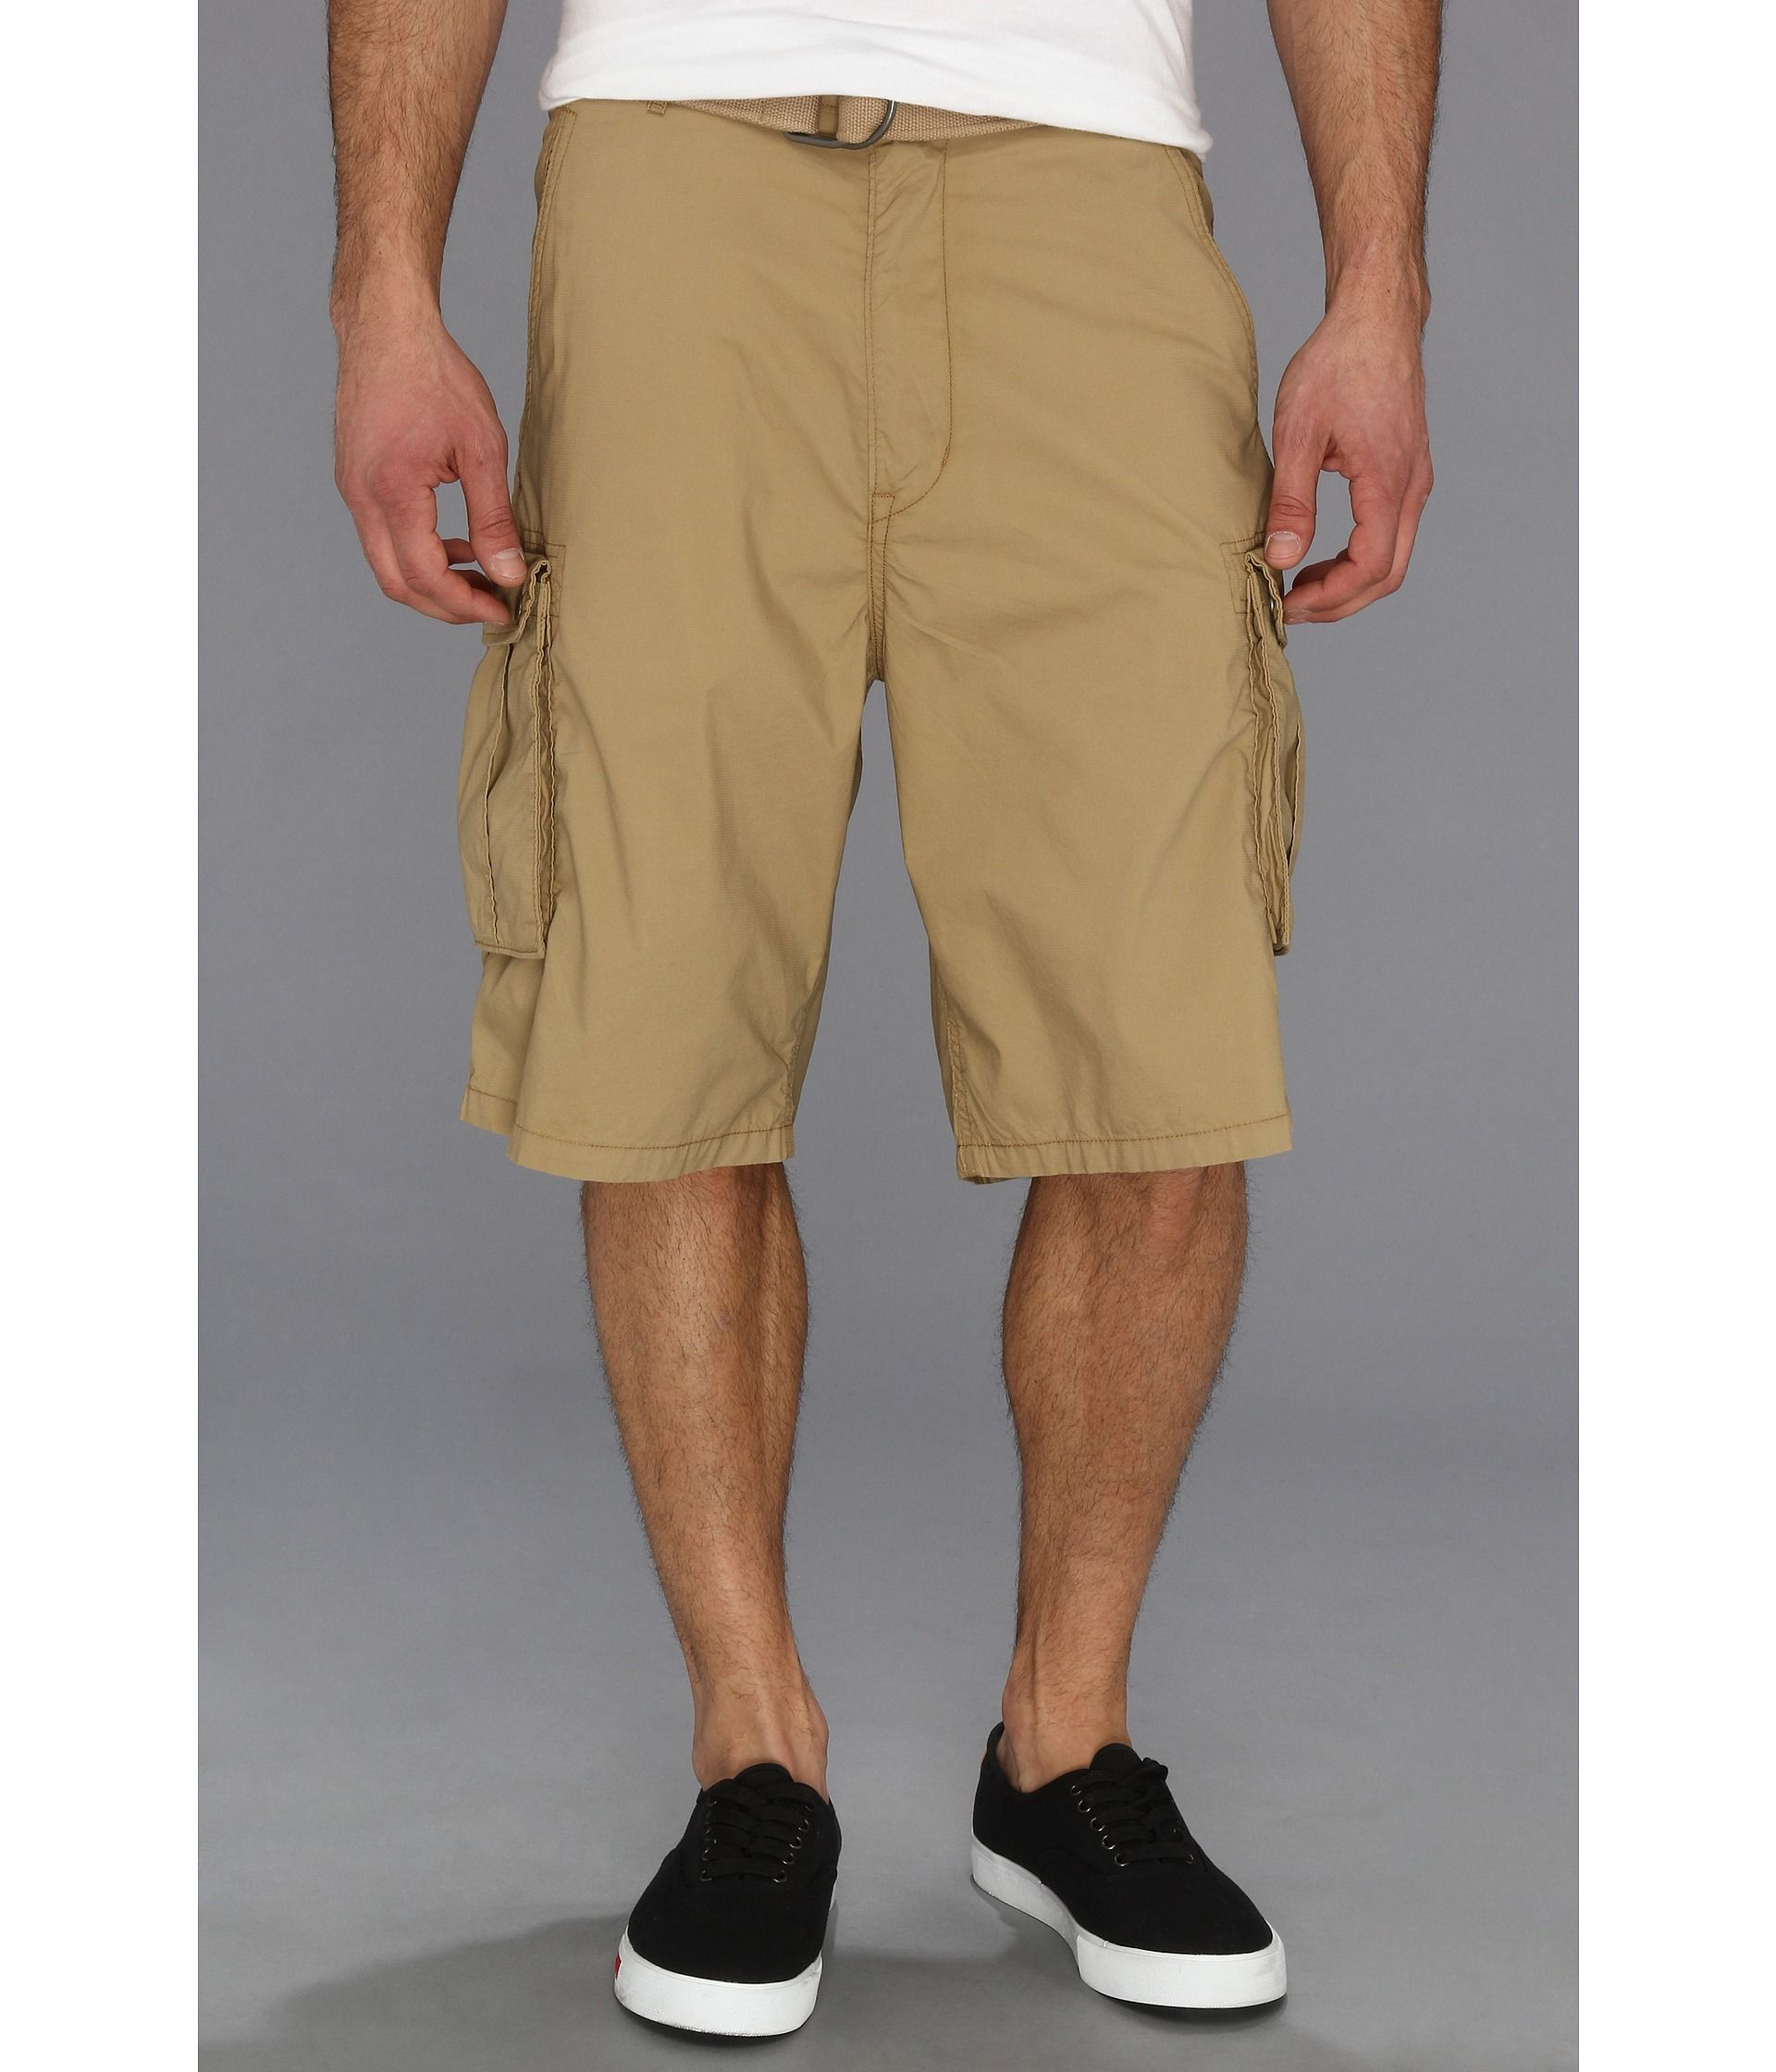 mens cargo shorts | Shorts | Pinterest | Mens cargo shorts